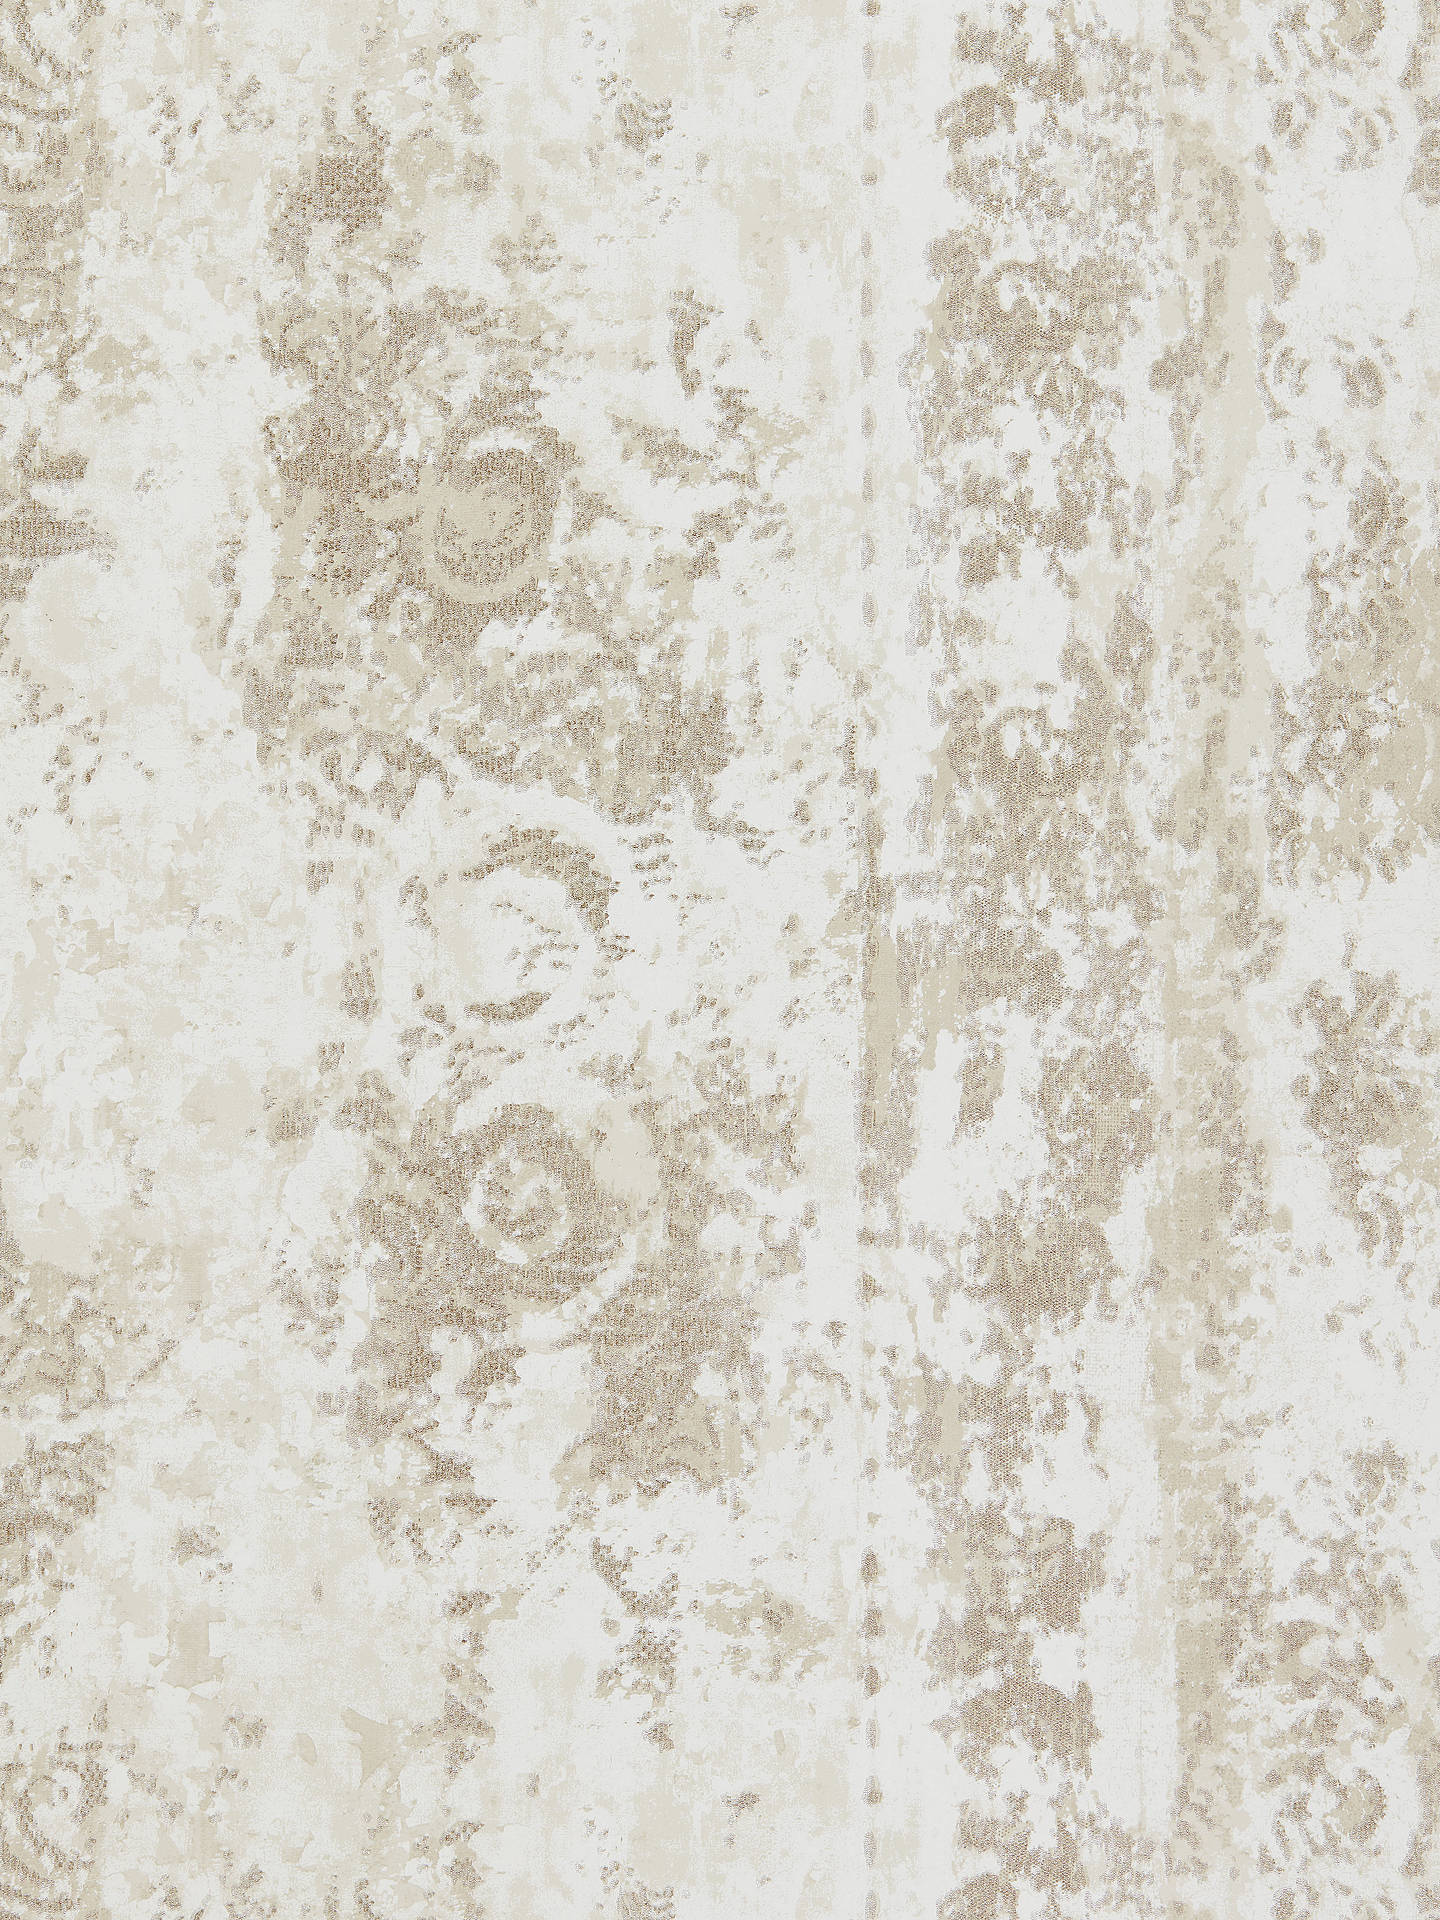 Buy Anthology Pozzolana Wallpaper EVIW112028 Online at johnlewis.com